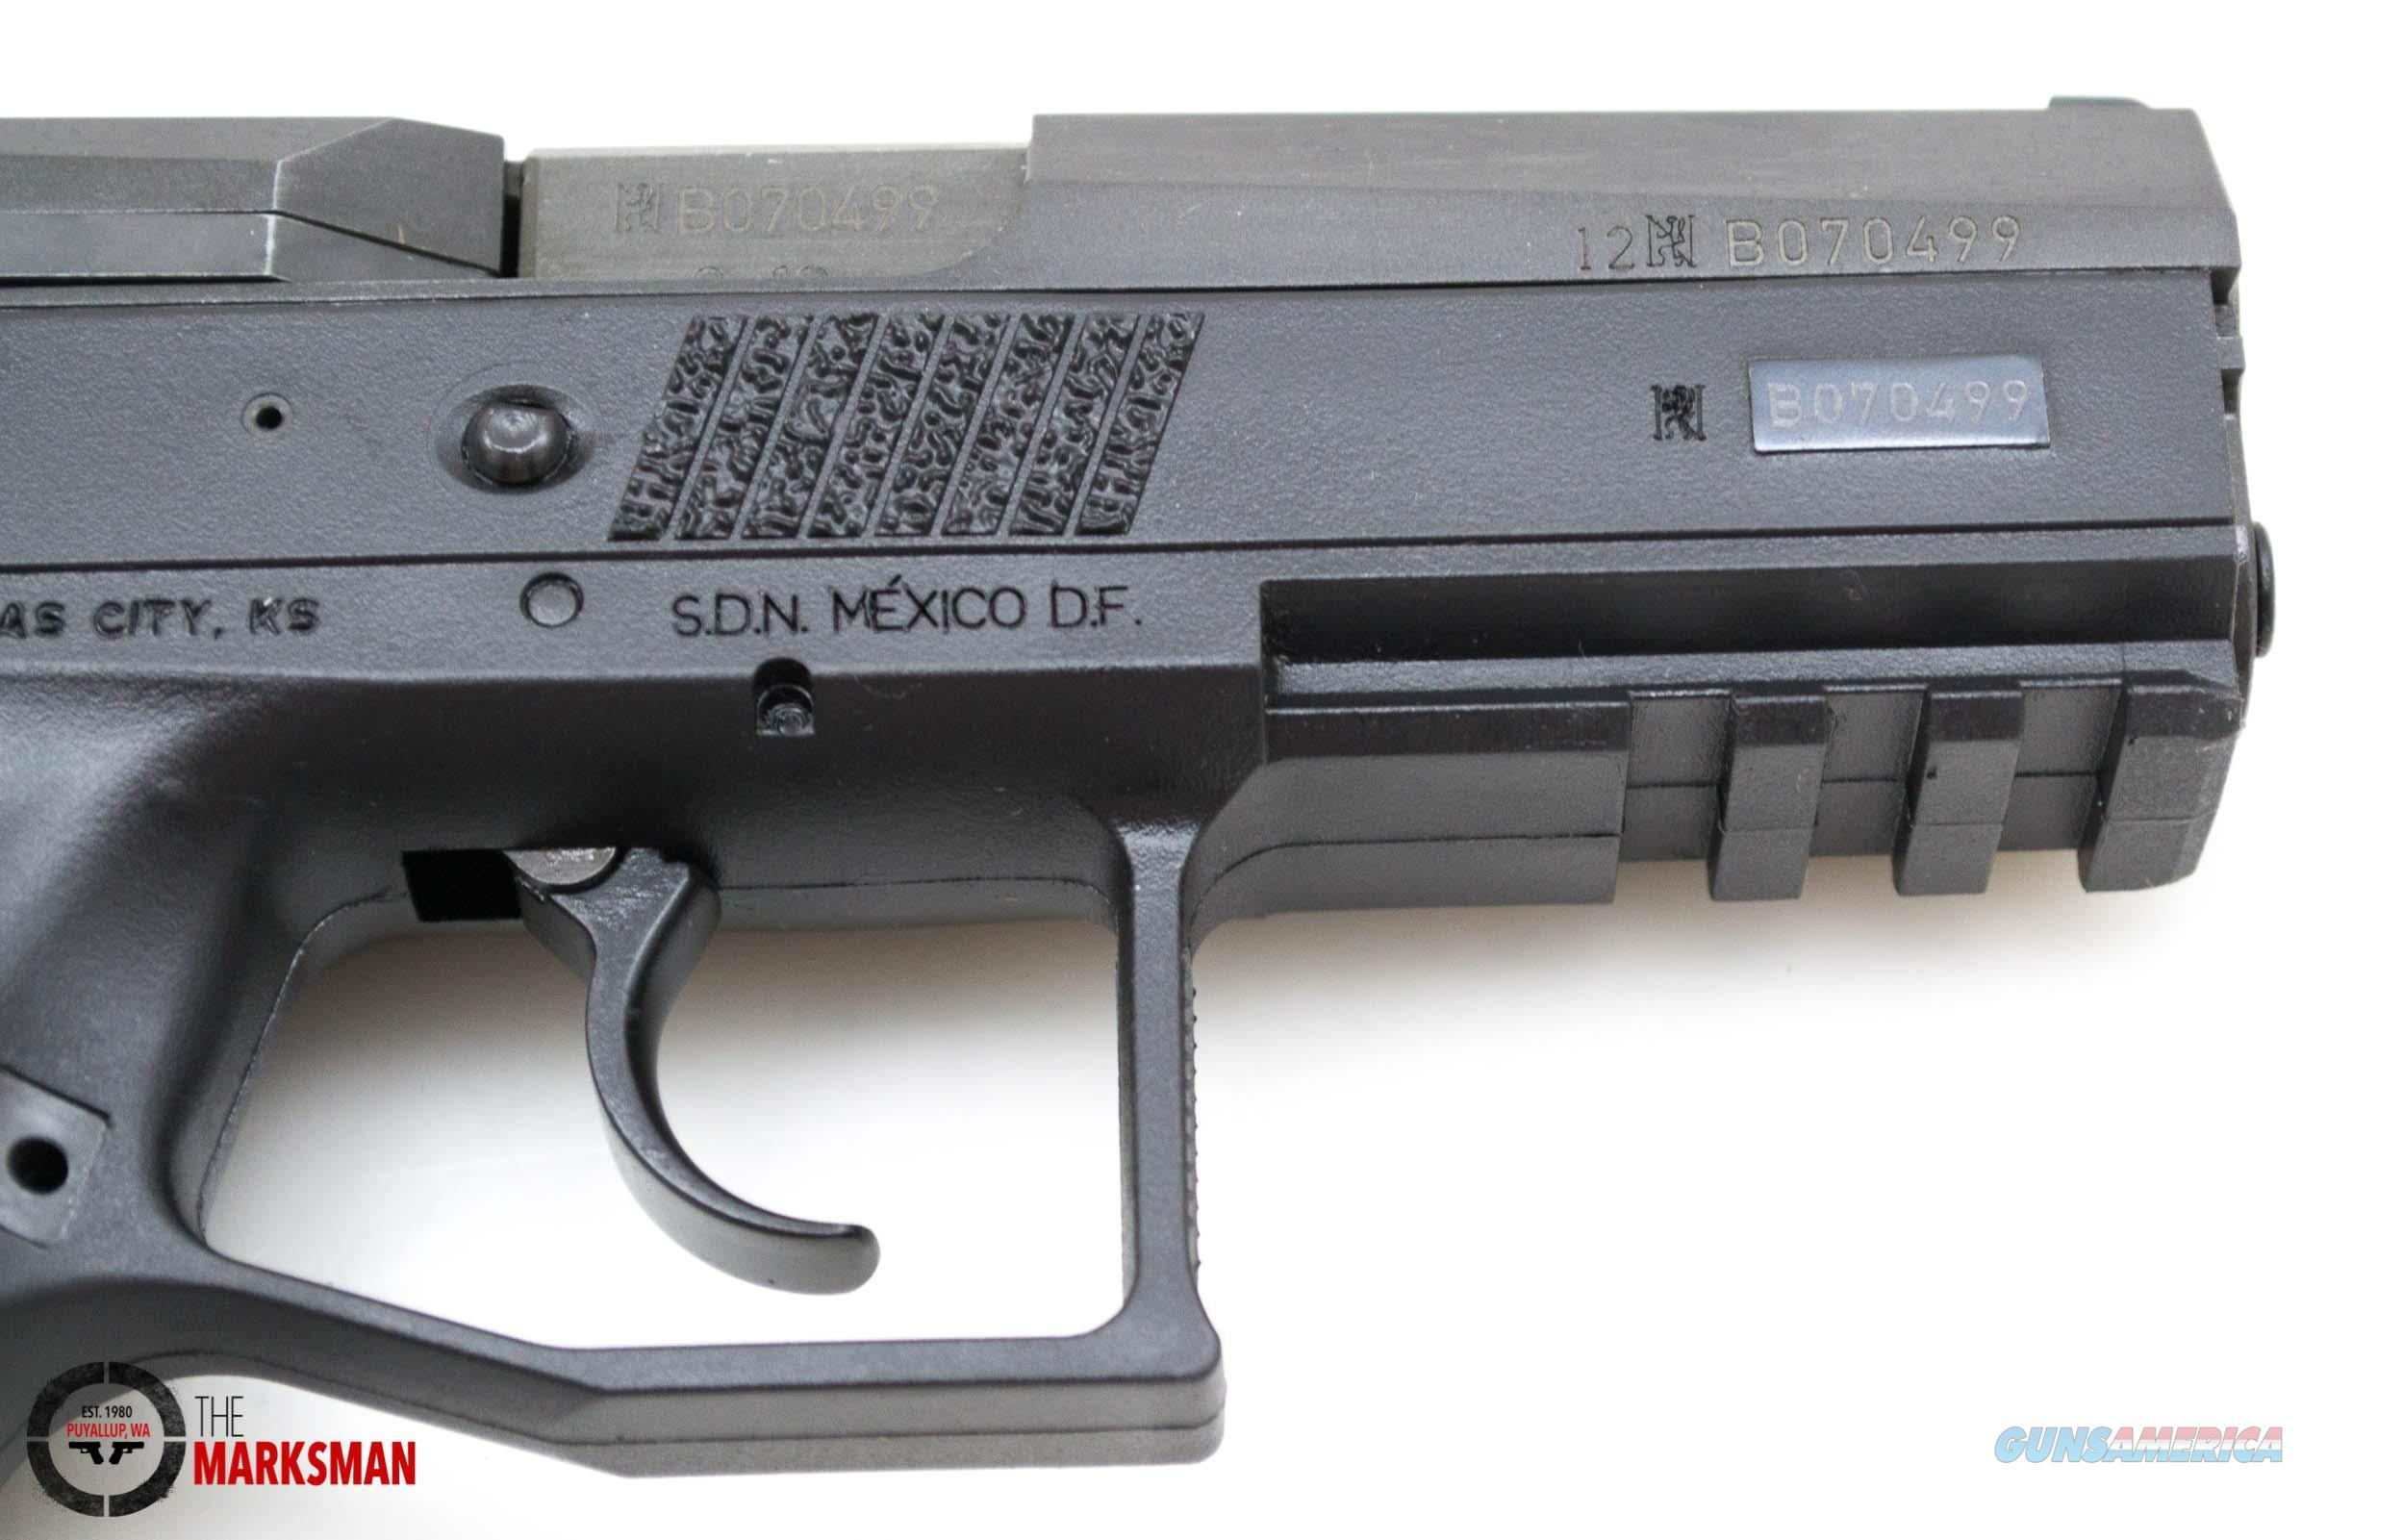 CZ P-07 Duty, 9mm NEW SDN Mexico Stamping